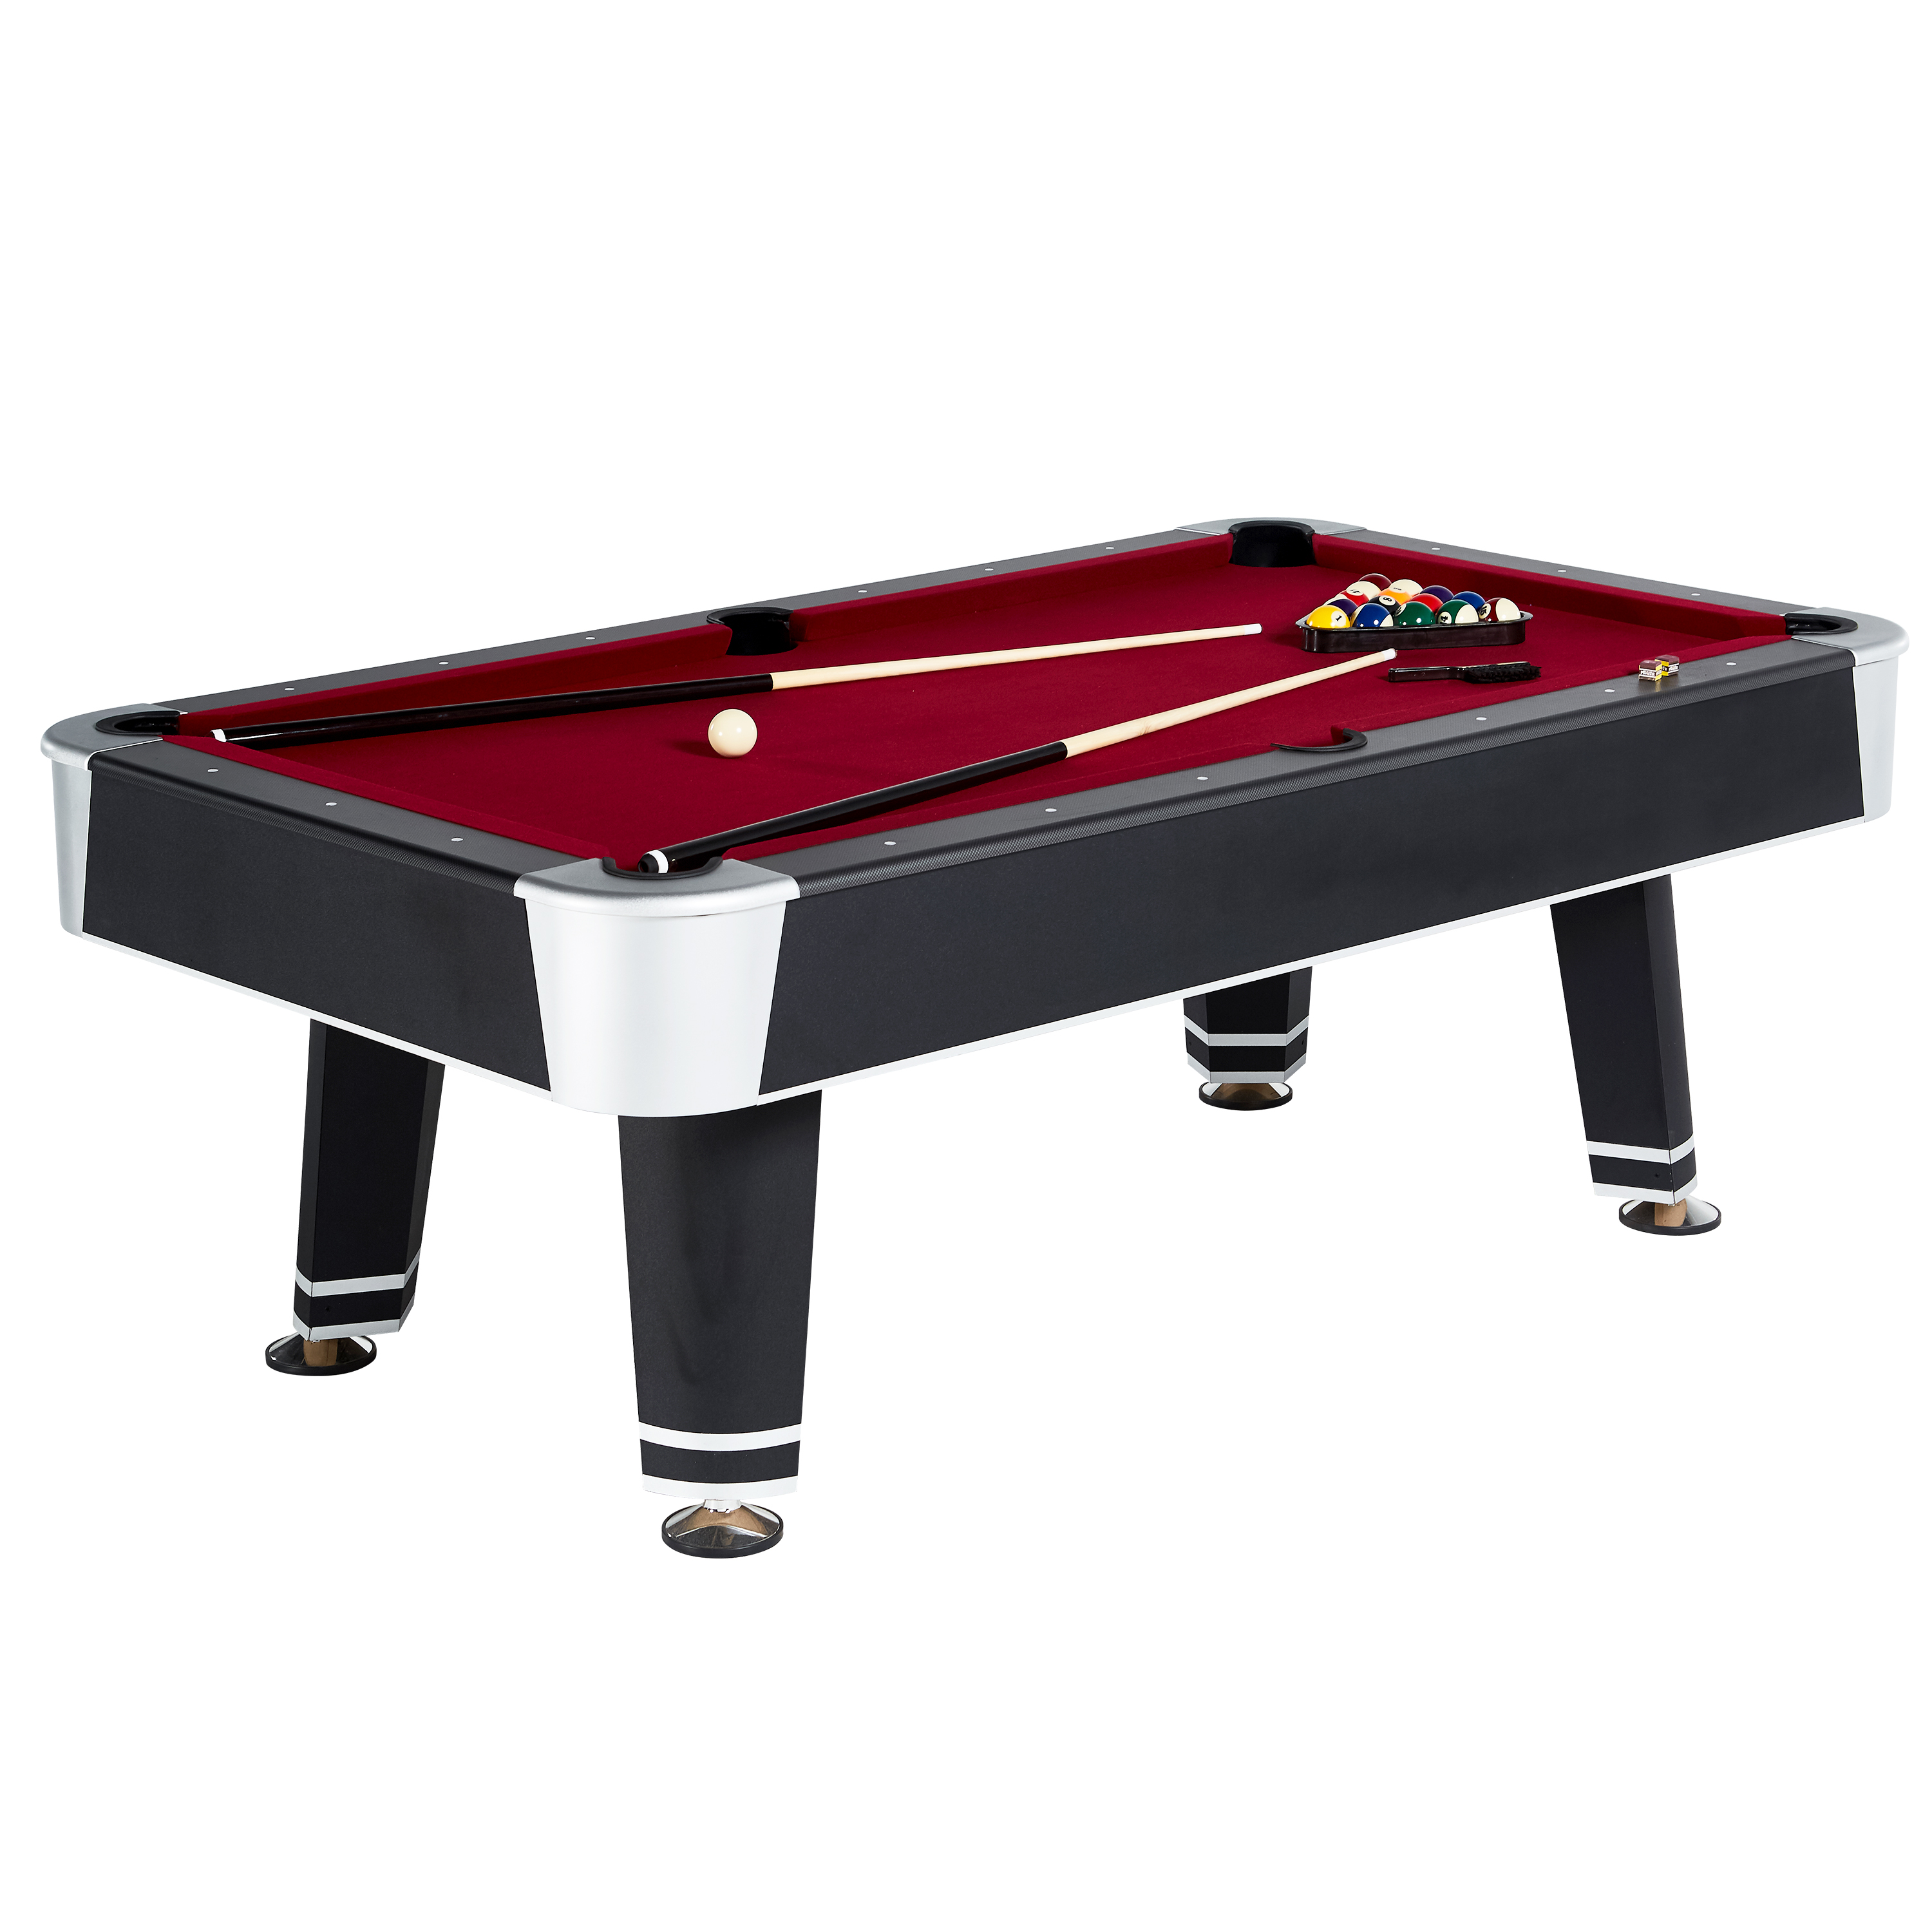 MD Sports Avondale 90 inch Billiard Table, includes billiard balls, two cue sticks, triangle rack, two chalk and brush, Black/Red